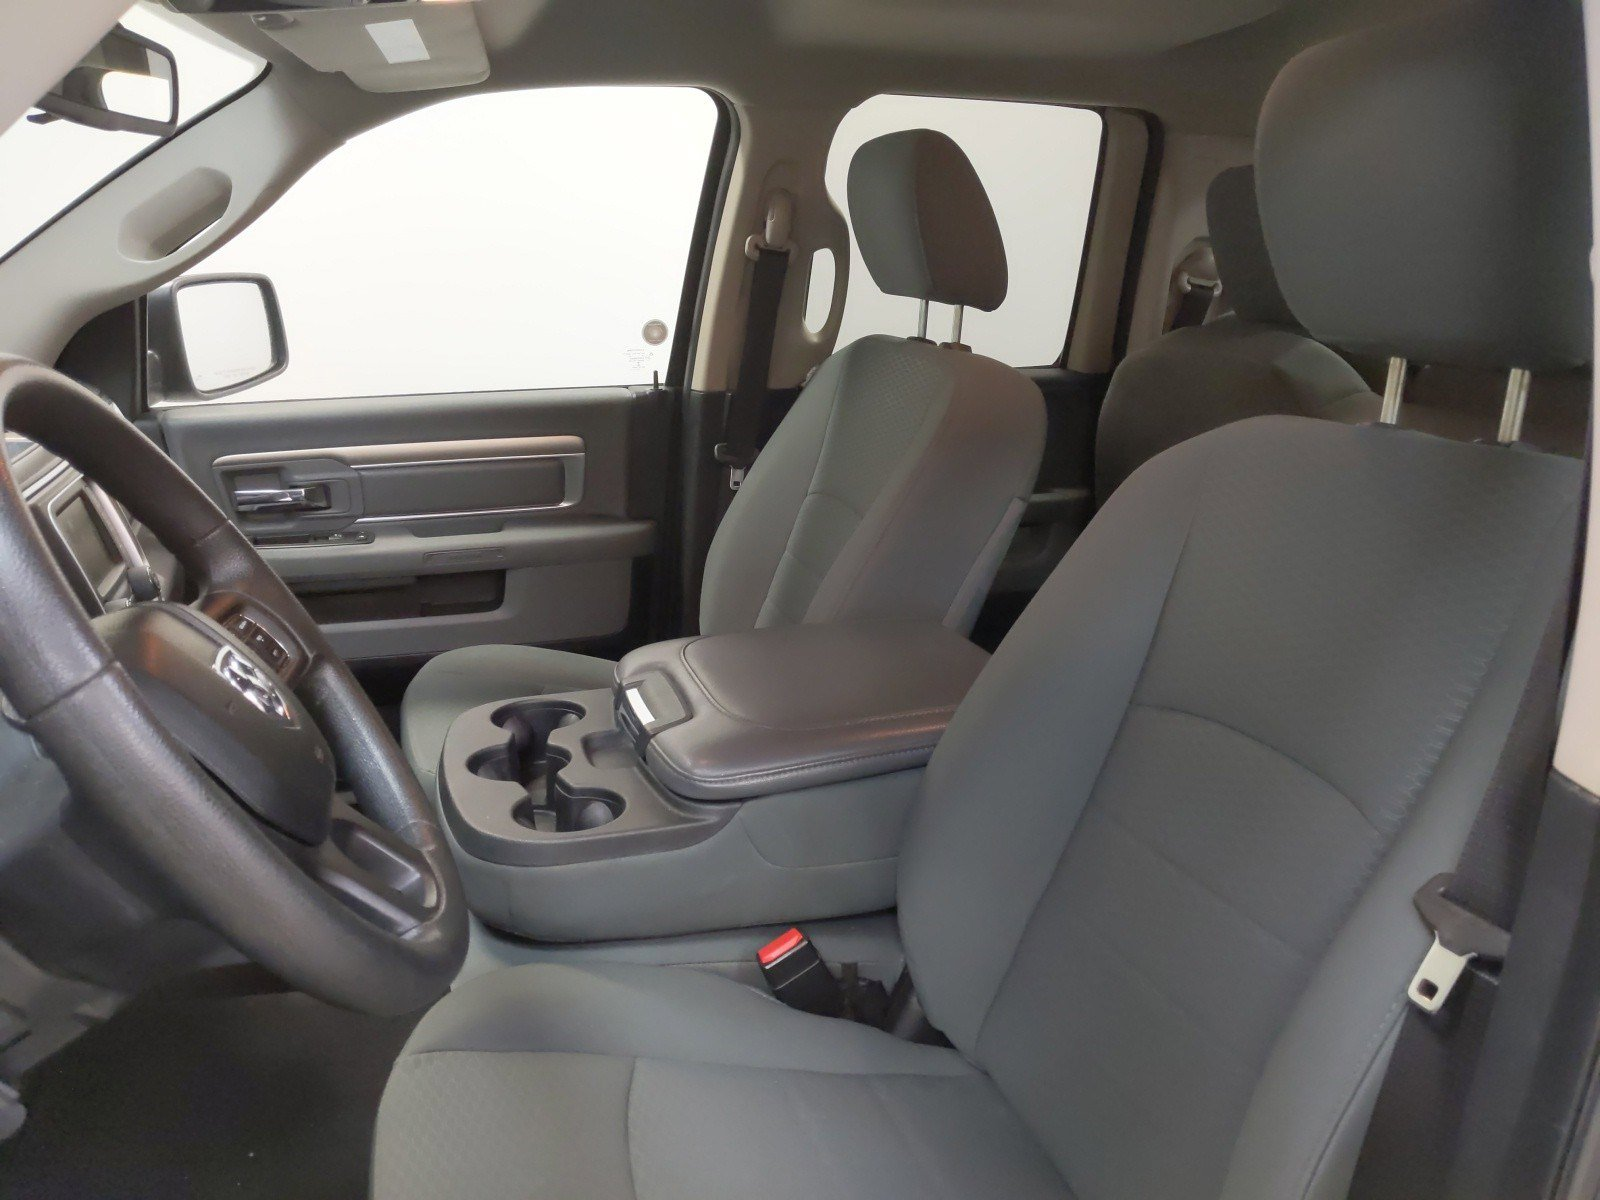 Used 2014 Ram 1500 Outdoorsman Crew Cab Pickup for sale in Grand Island NE